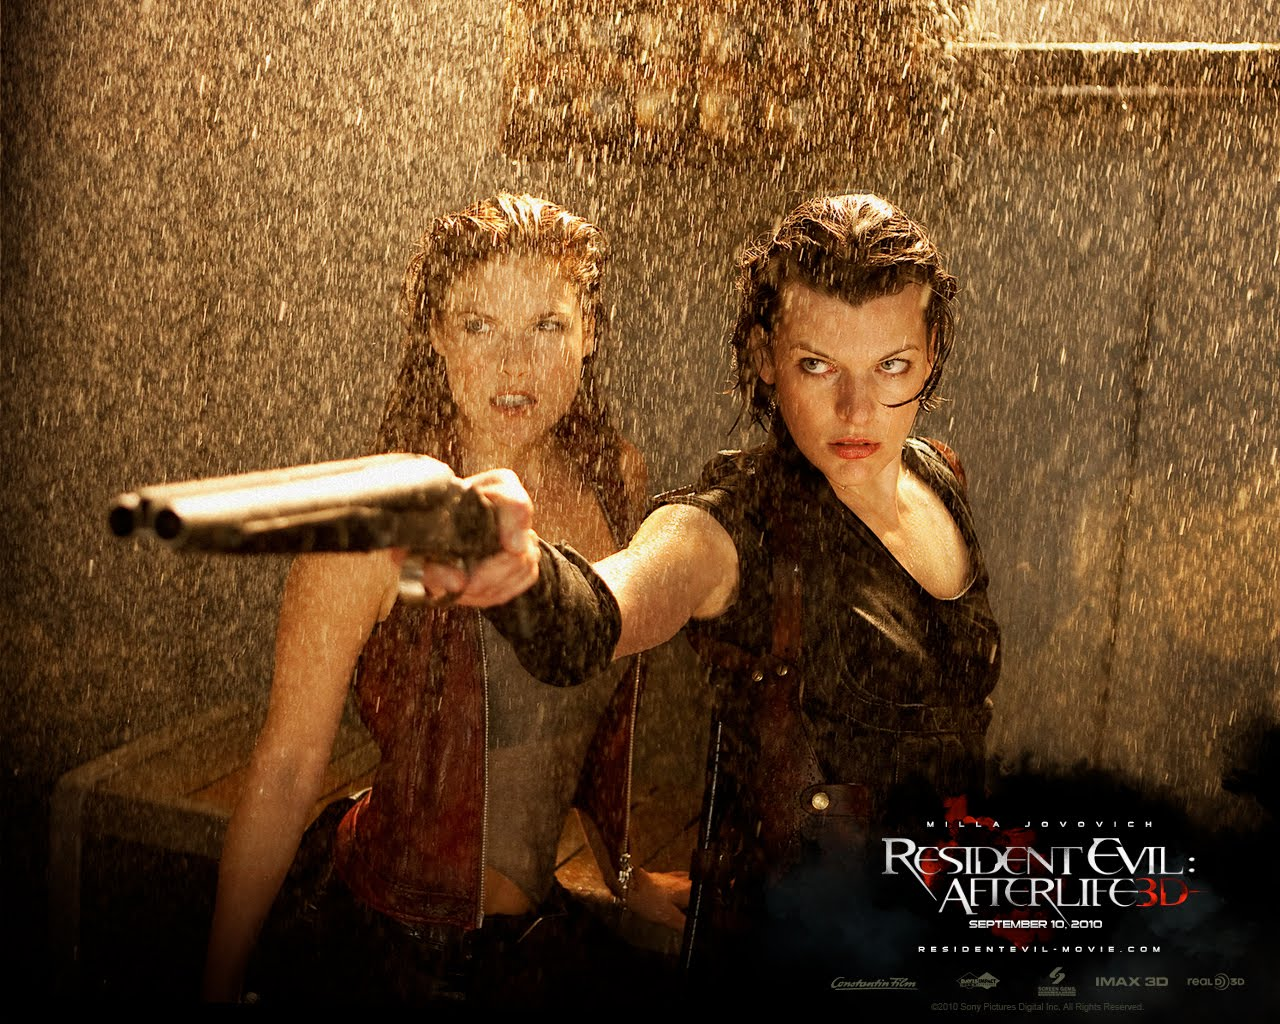 Hillecarnes Com Br Resident Evil Afterlife Download Mp4